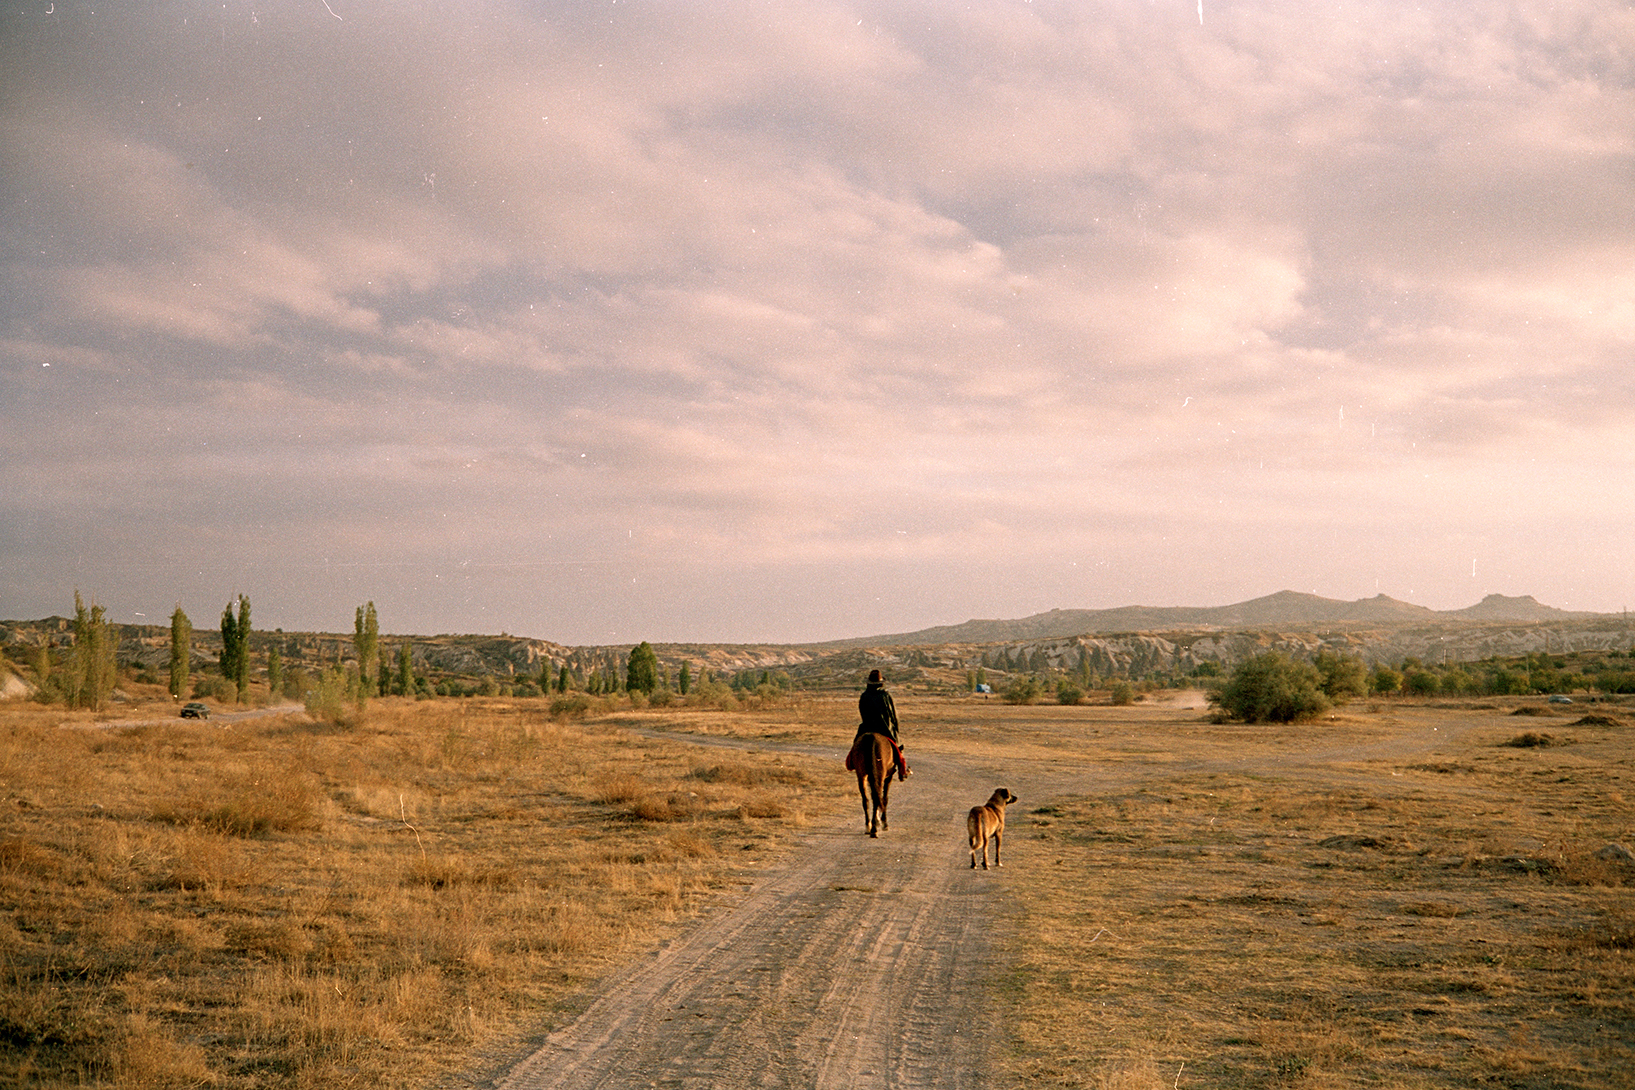 Man reading a horse with dog accompanying him in sunset lit field